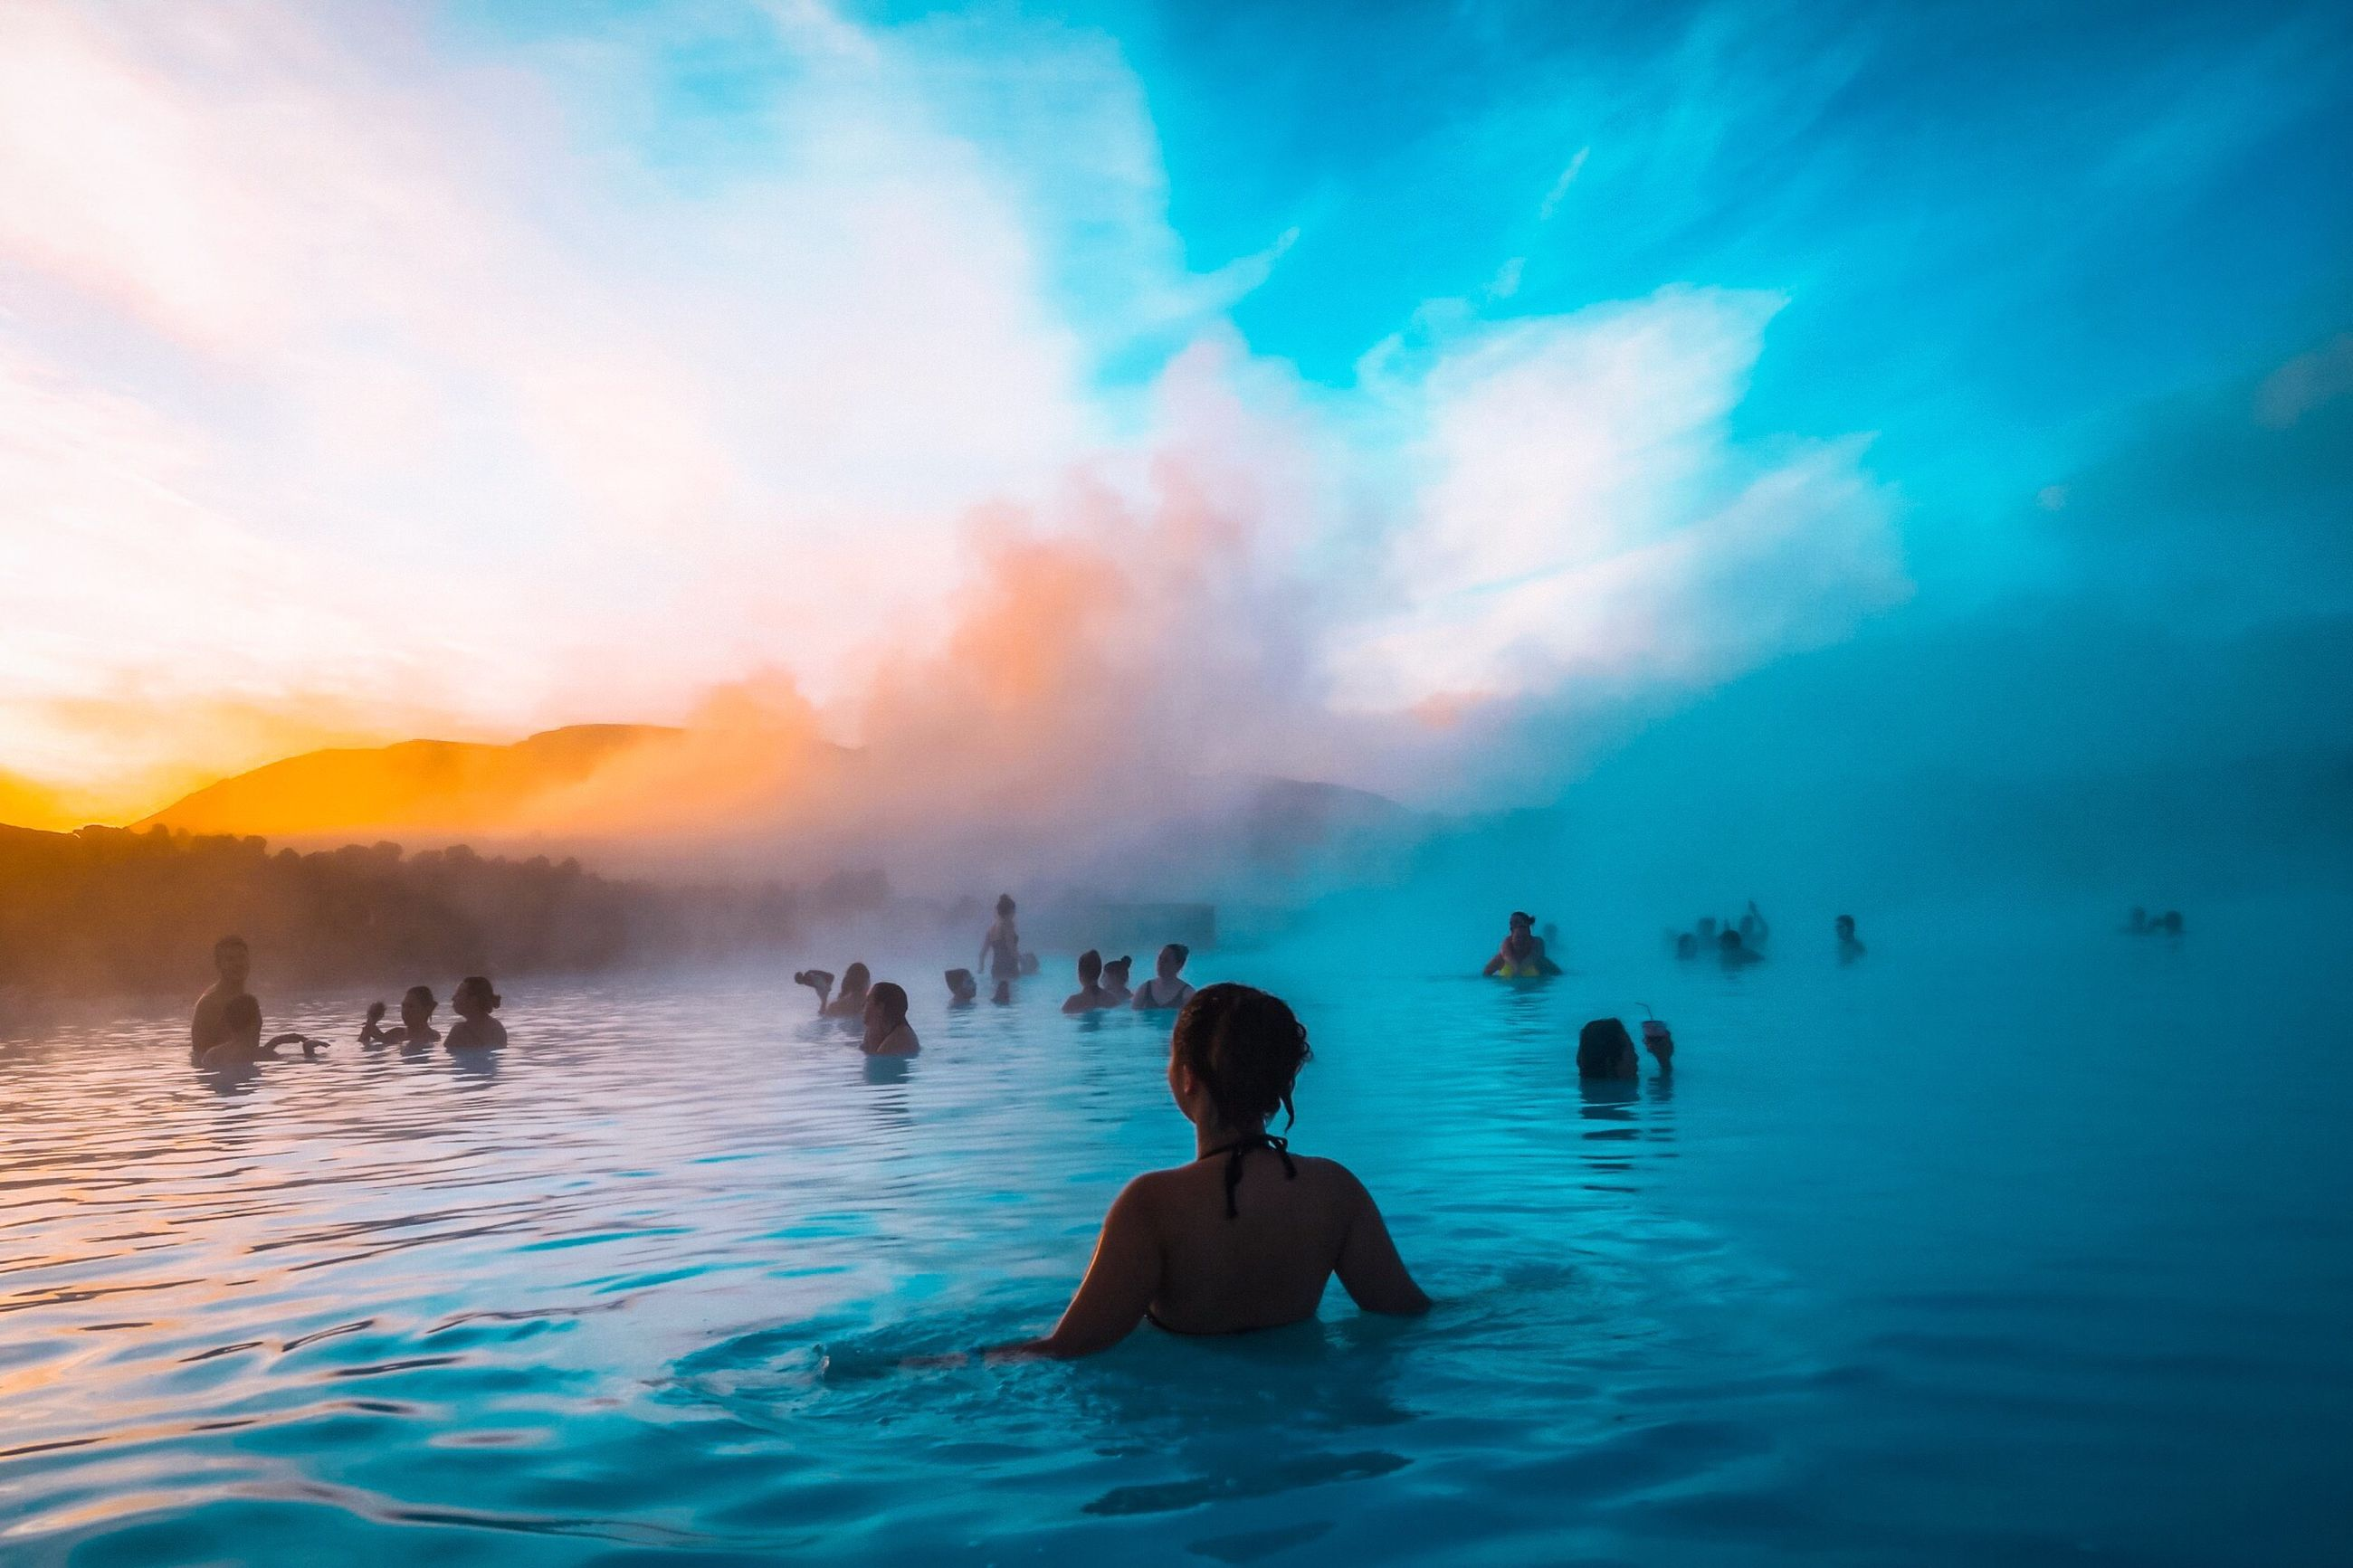 water, real people, lifestyles, cloud - sky, group of people, waterfront, leisure activity, vacations, swimming, holiday, trip, beauty in nature, nature, people, sky, enjoyment, hot spring, women, swimming pool, outdoors